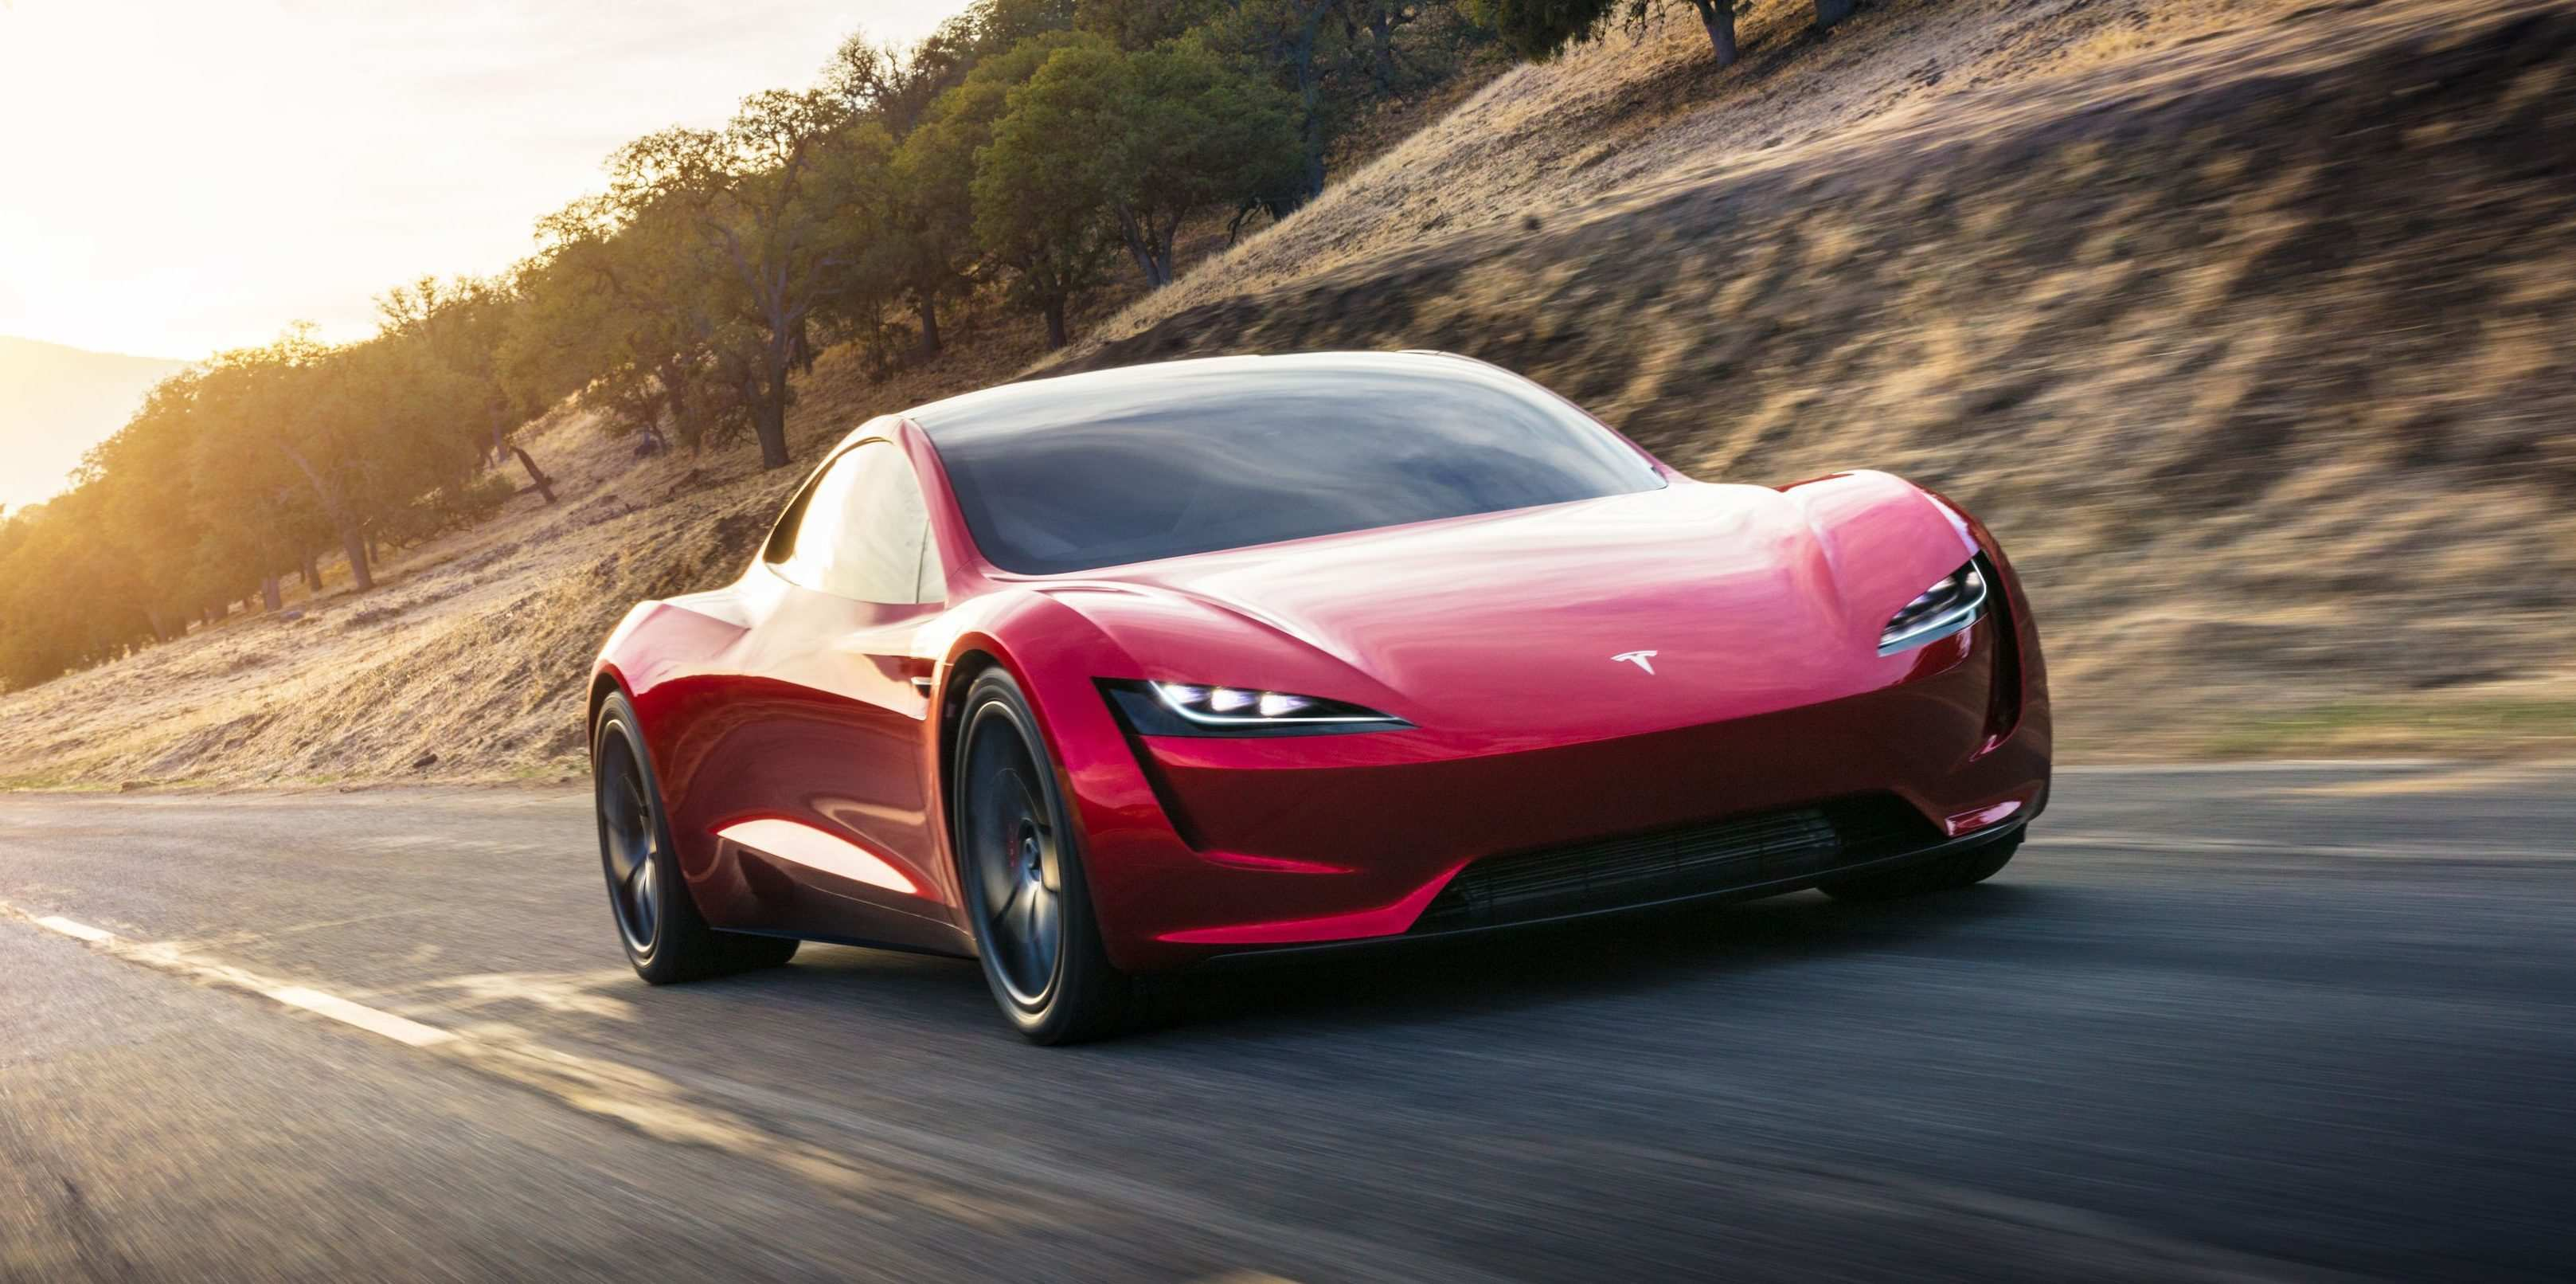 99 Best Review Tesla 2019 Options Pictures for Tesla 2019 Options